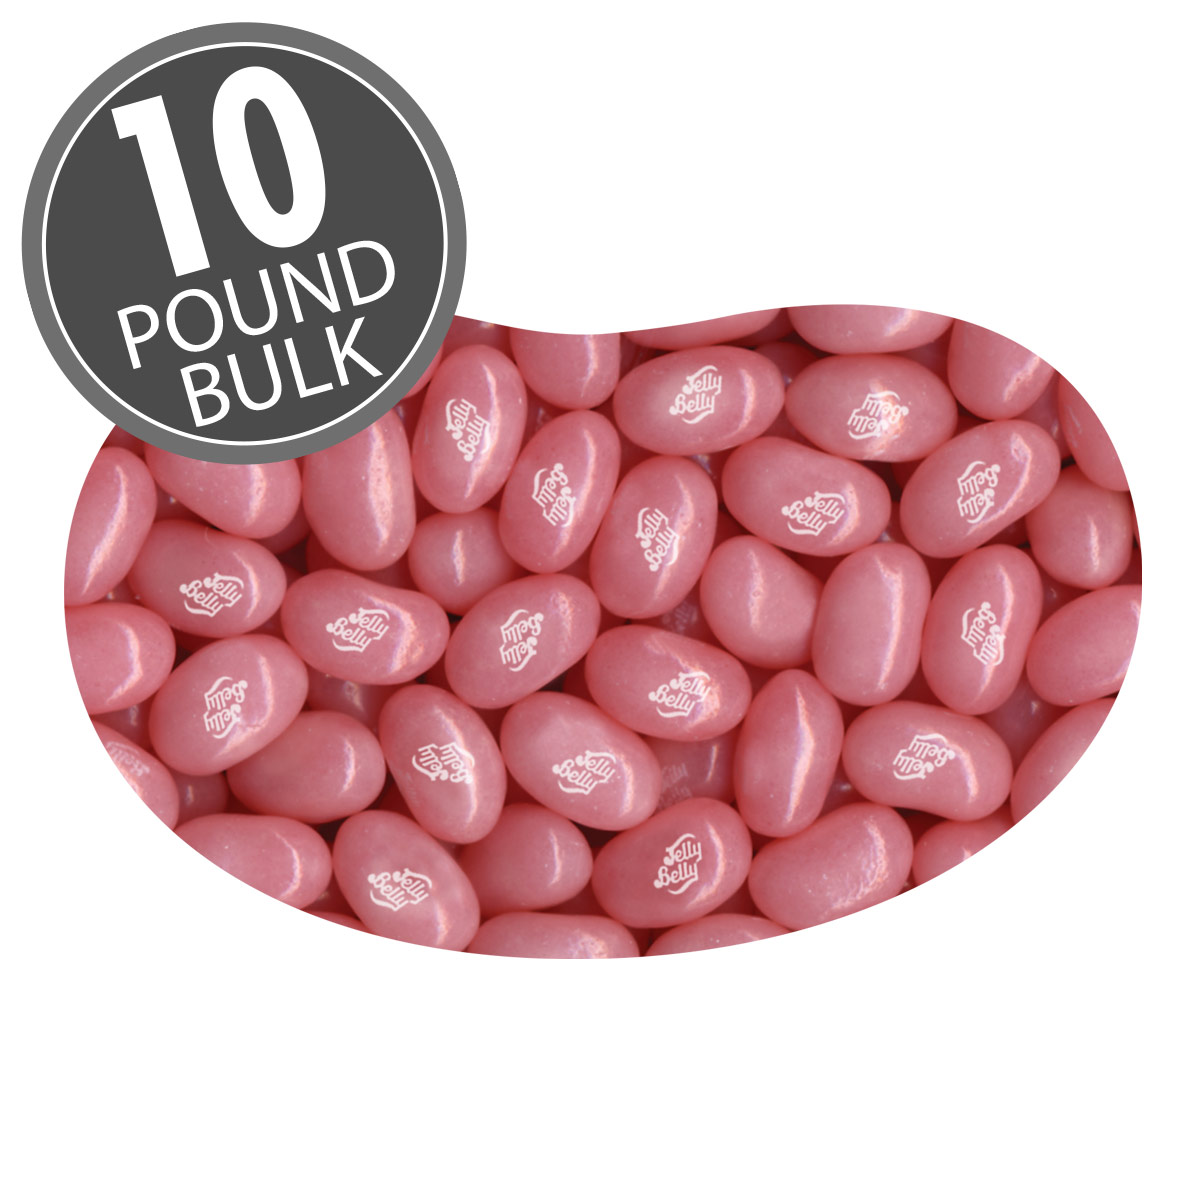 Cotton Candy Jelly Beans - 10 lbs bulk